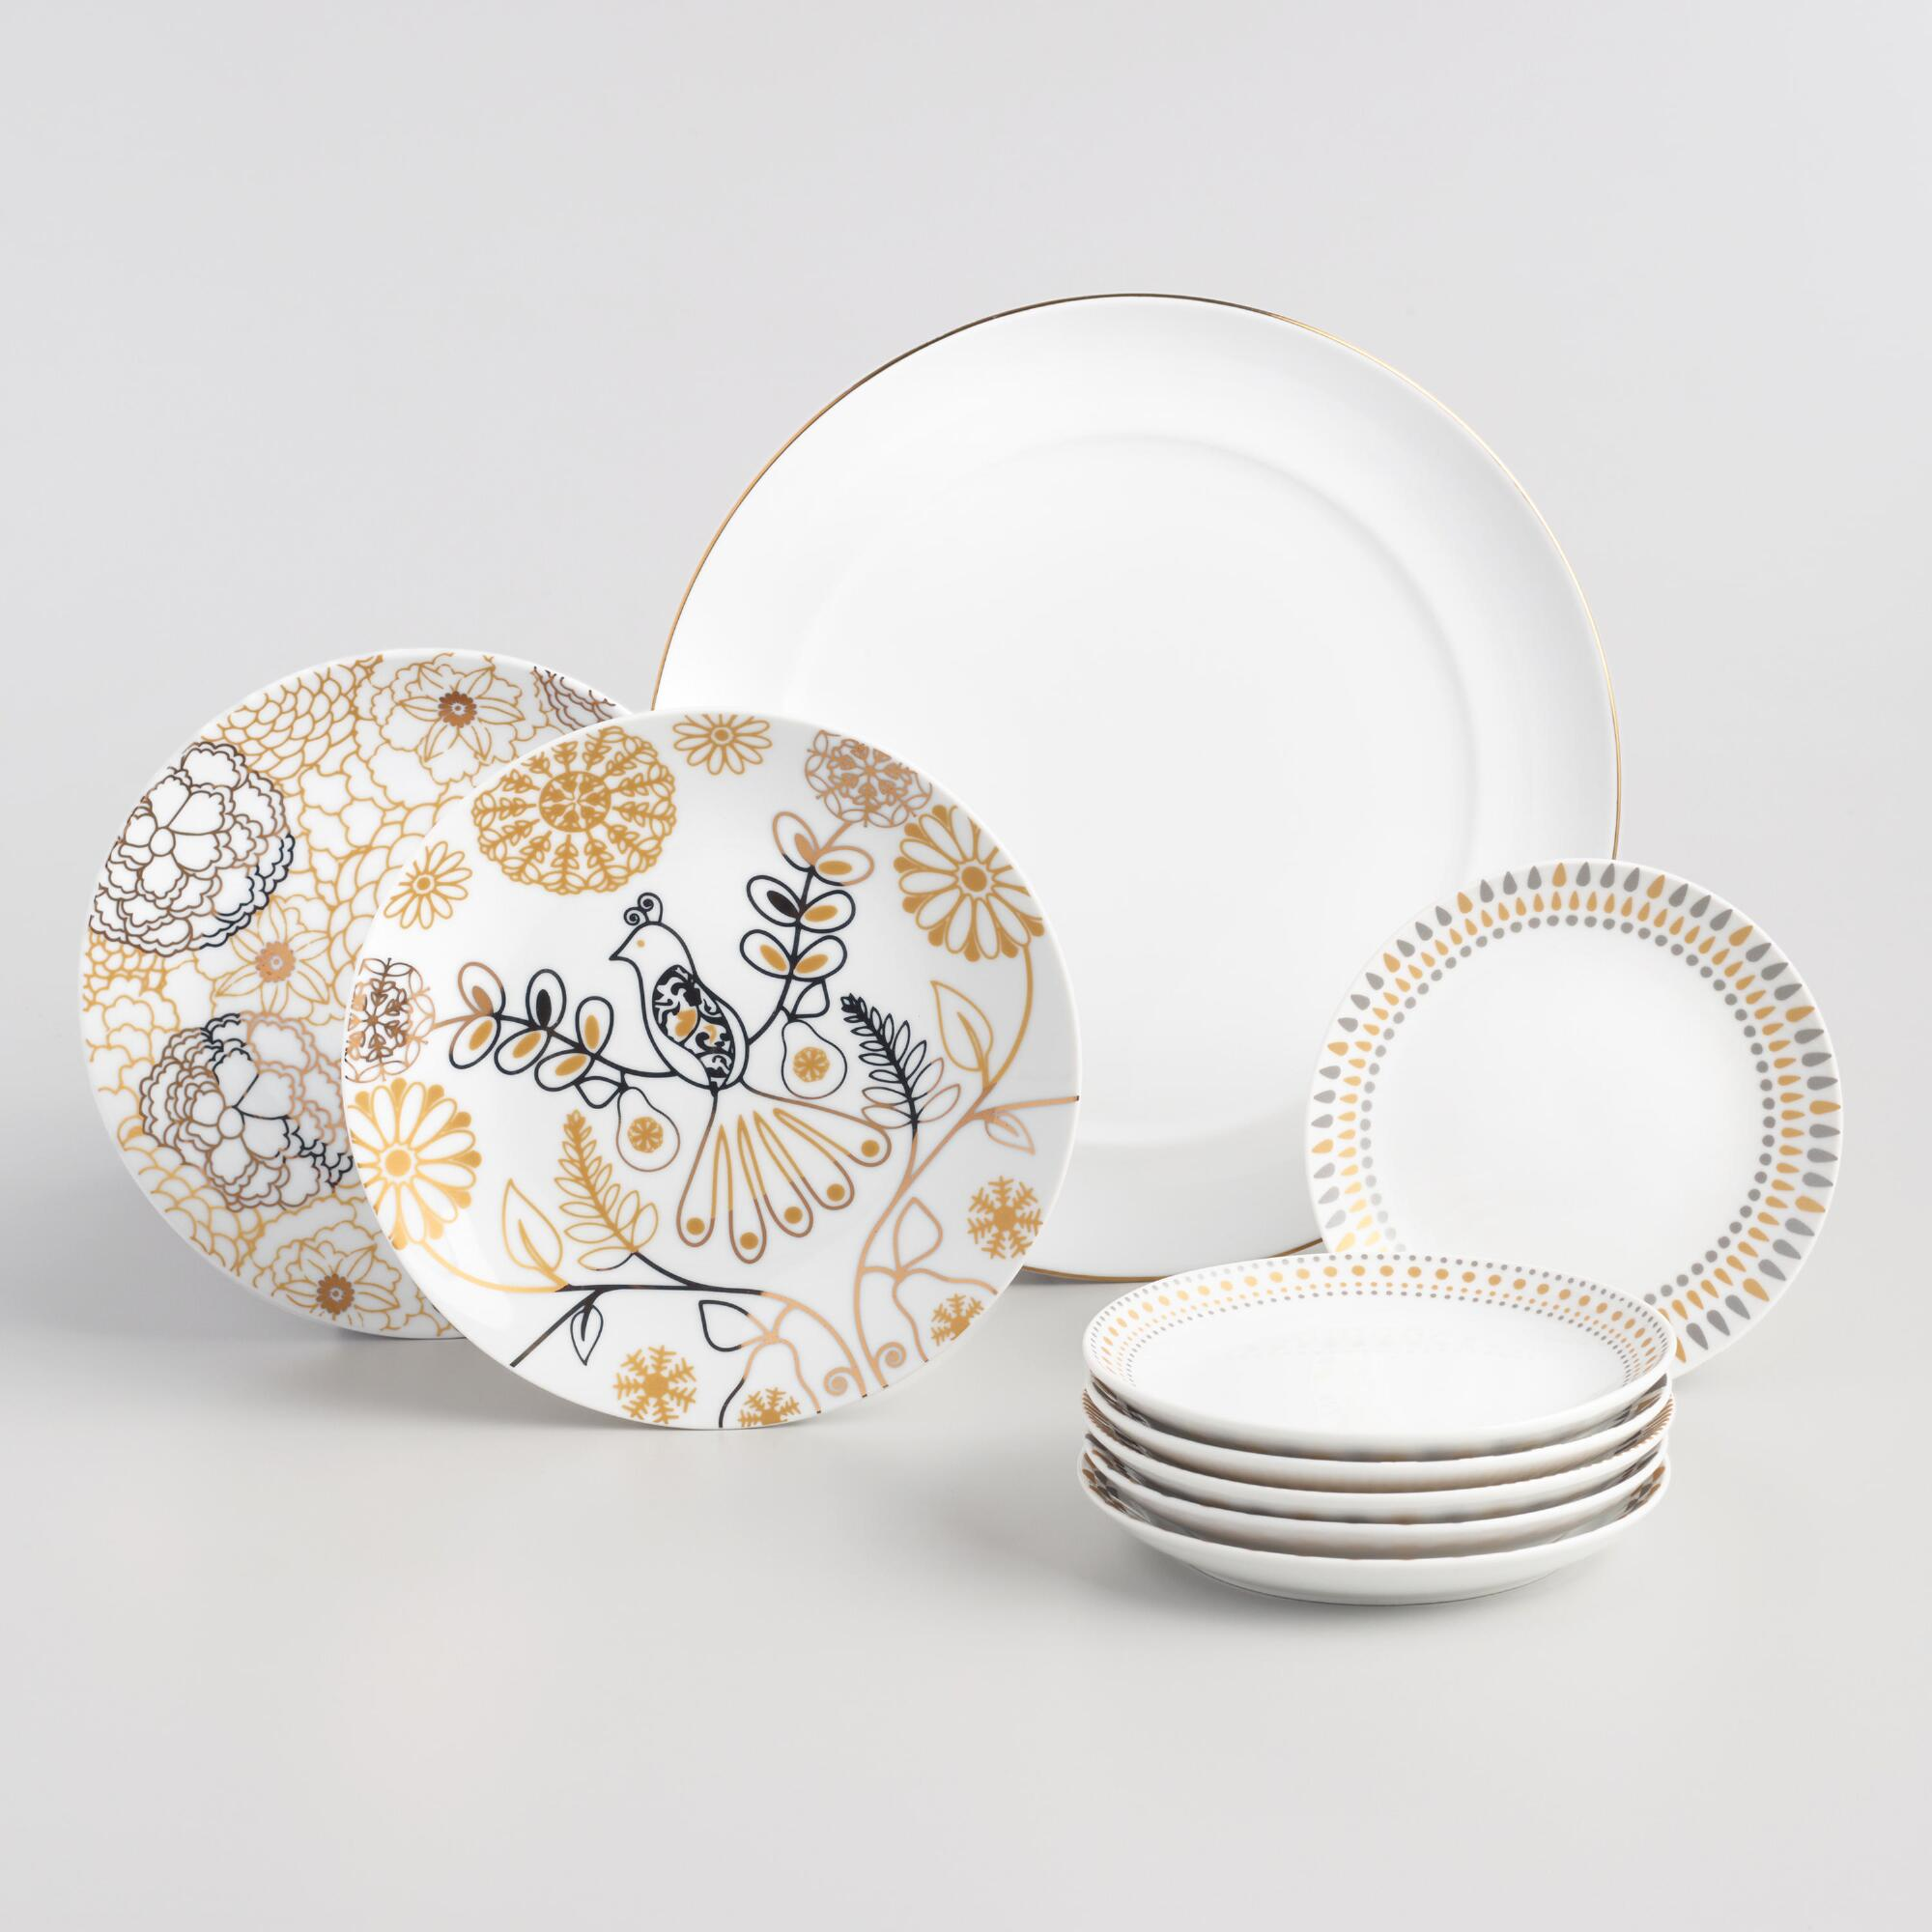 Metallic and White Dinnerware Collection by World Market